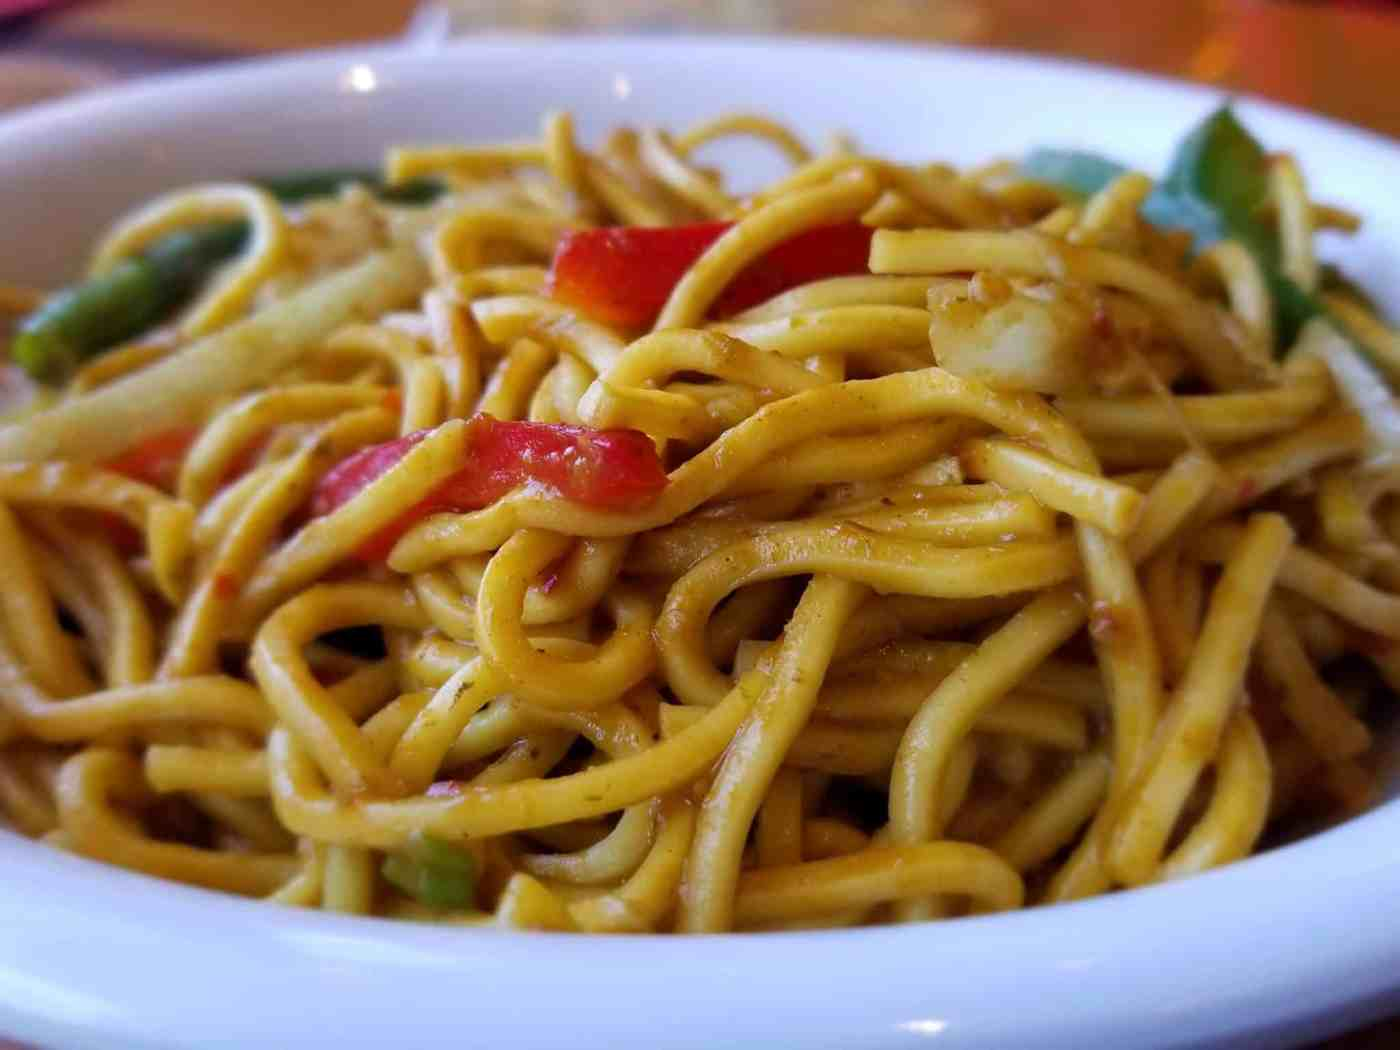 Fresh Noodles from The Mongolian Wok